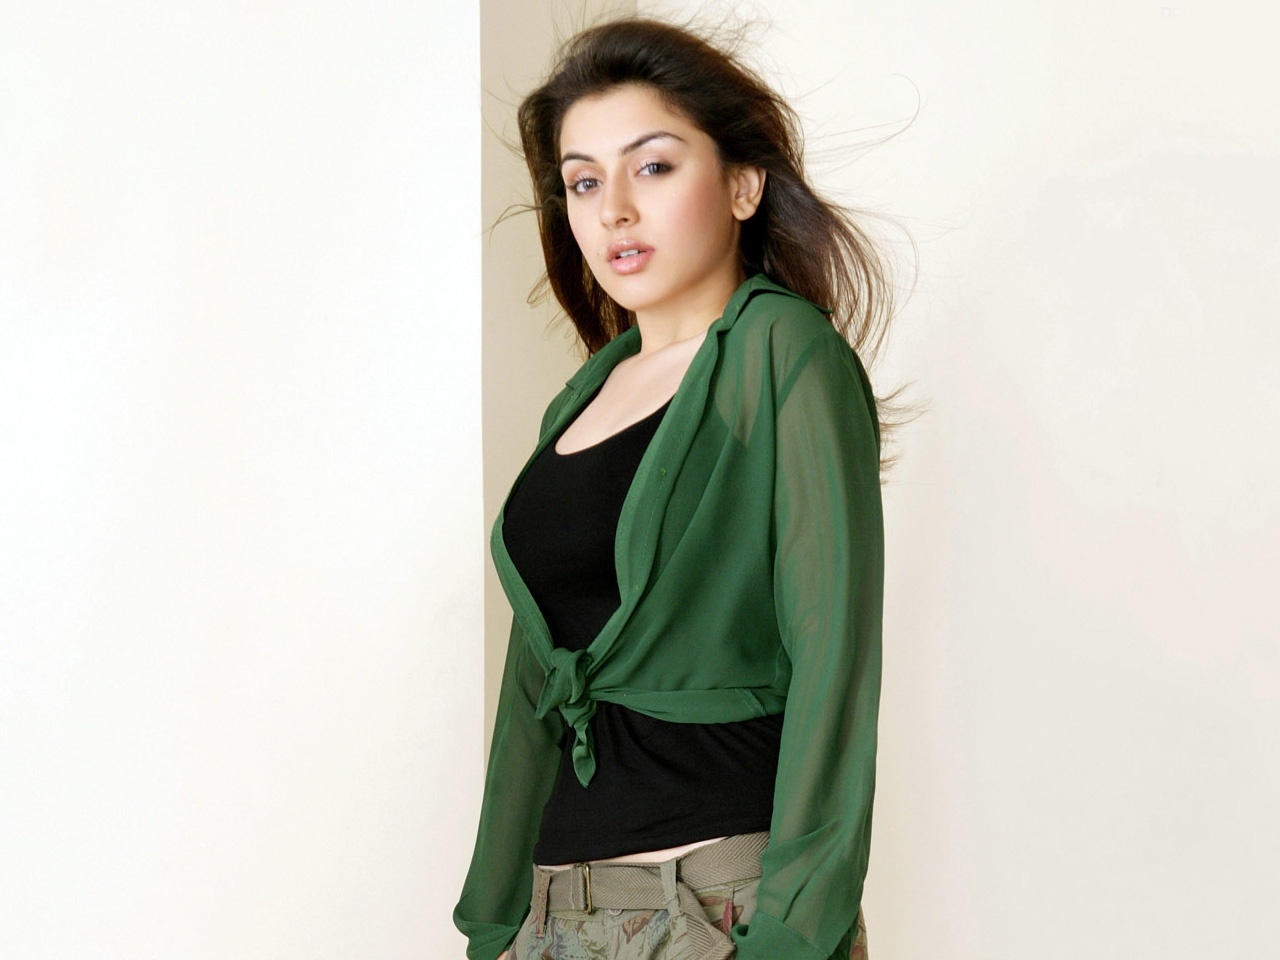 Hansika 511 Wallpapers In Jpg Format For Free Download